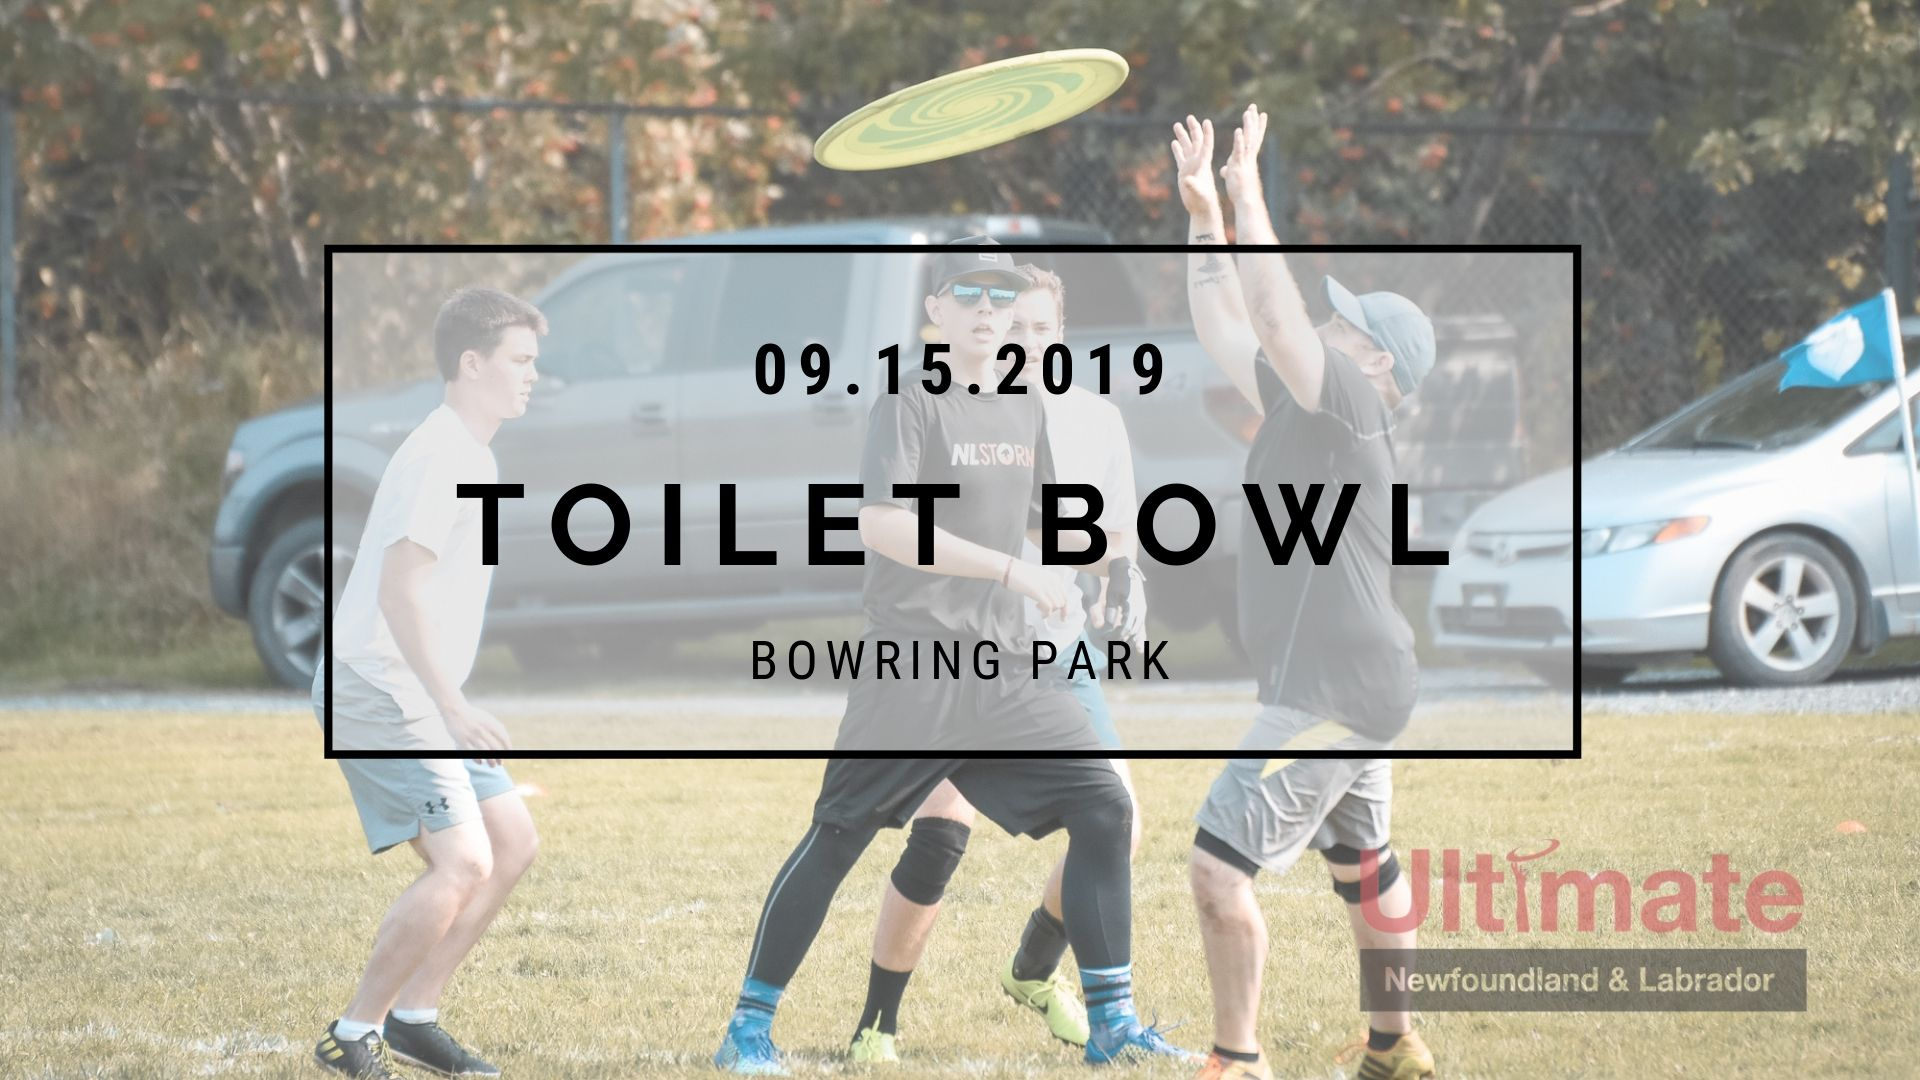 A promotional image for Ultimate NL's annual Toilet Bowl tournament.